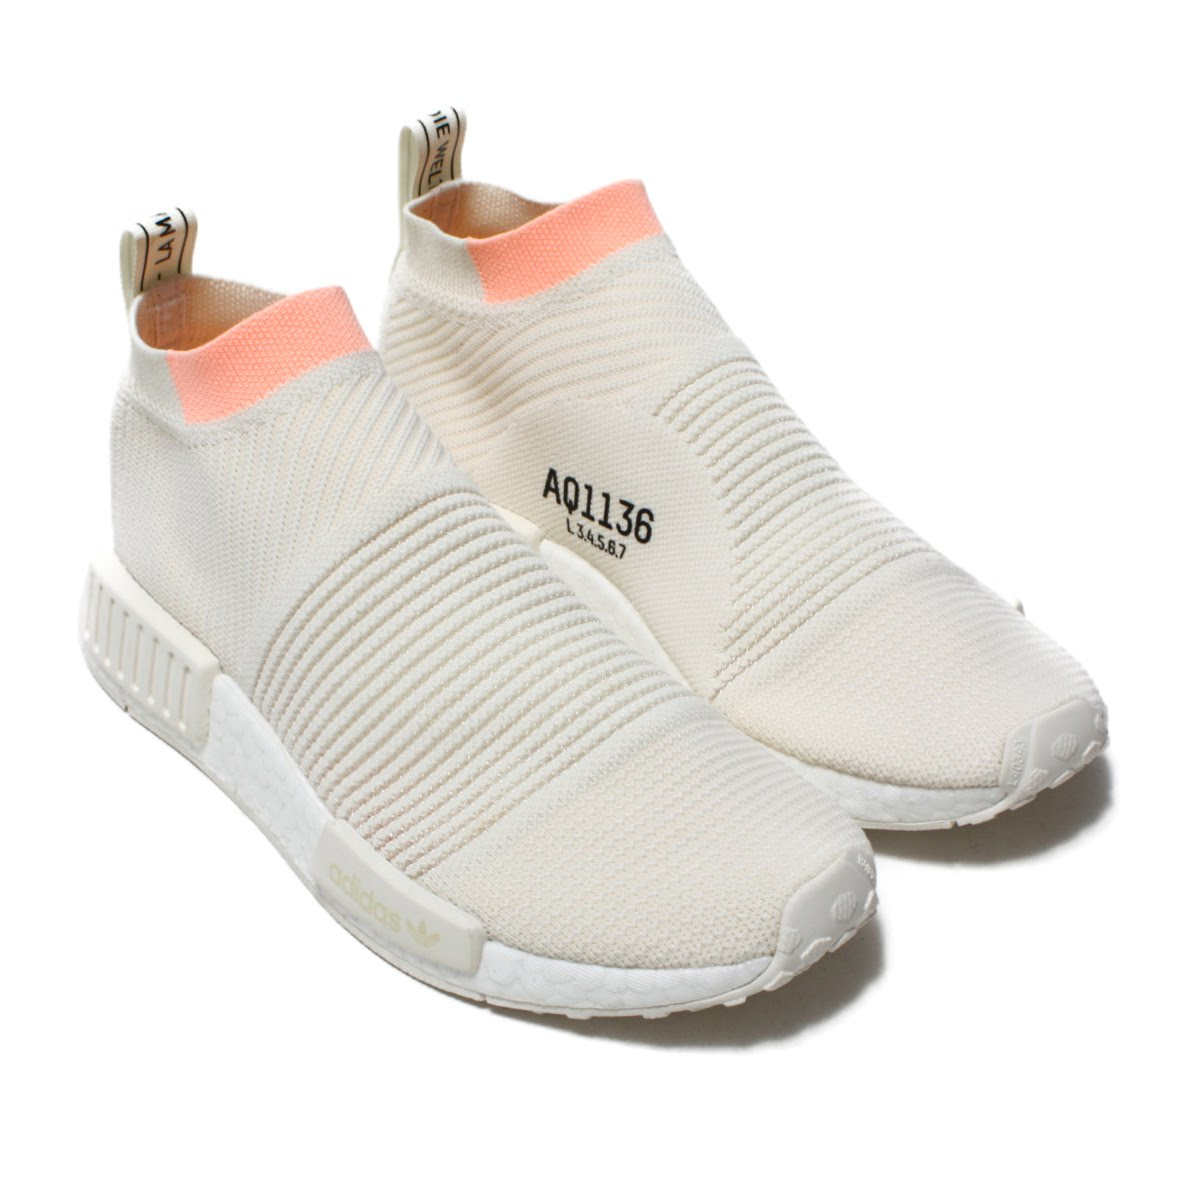 予約販売 adidas Originals Originals NMD White/Cloud_CS1 PK W(アディダス オリジナルス エヌエムディCS1PKW)Cloud PK White/Cloud White/Clear Orange【メンズ レディース スニーカー】18FW-I, Reggie Shop:1747eef2 --- clftranspo.dominiotemporario.com